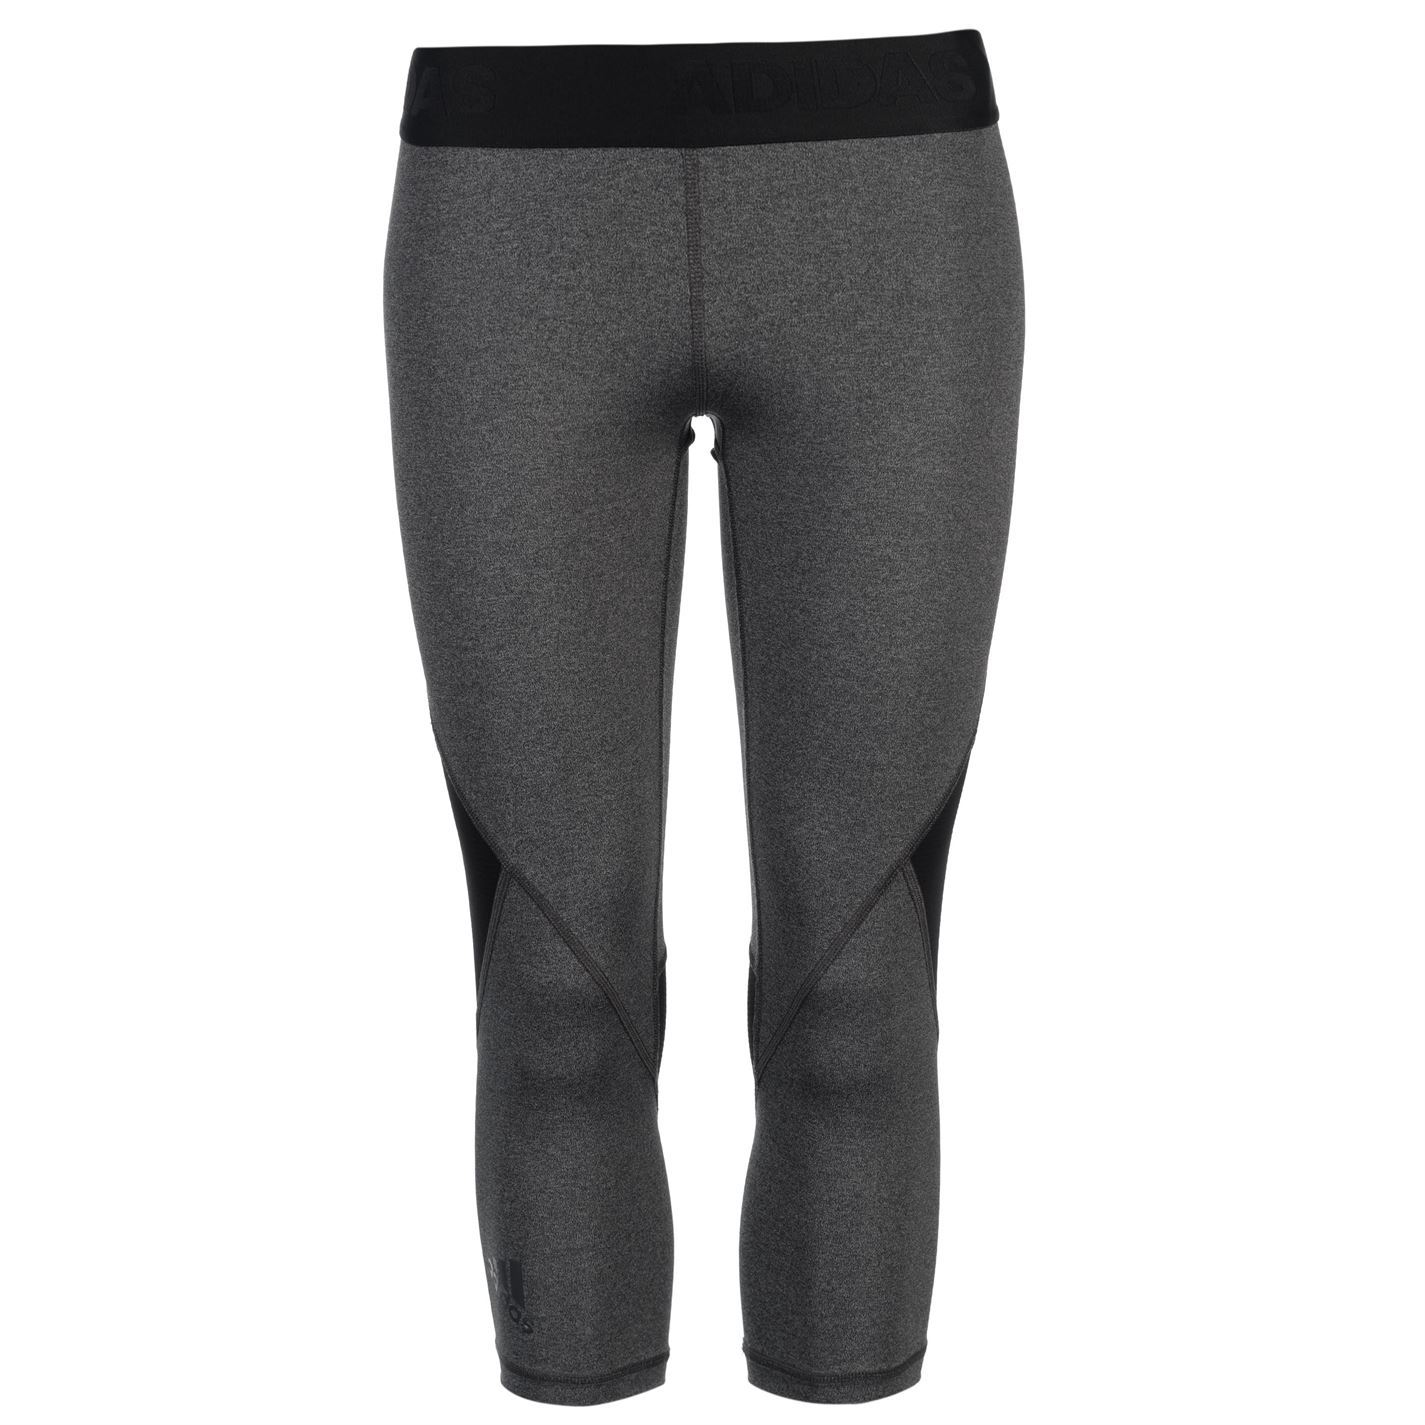 adidas Alphaskin Sport 34h Women s Tights Black 42-44. About this product.  Picture 1 of 2  Picture 2 of 2 81f2c0bbd3c